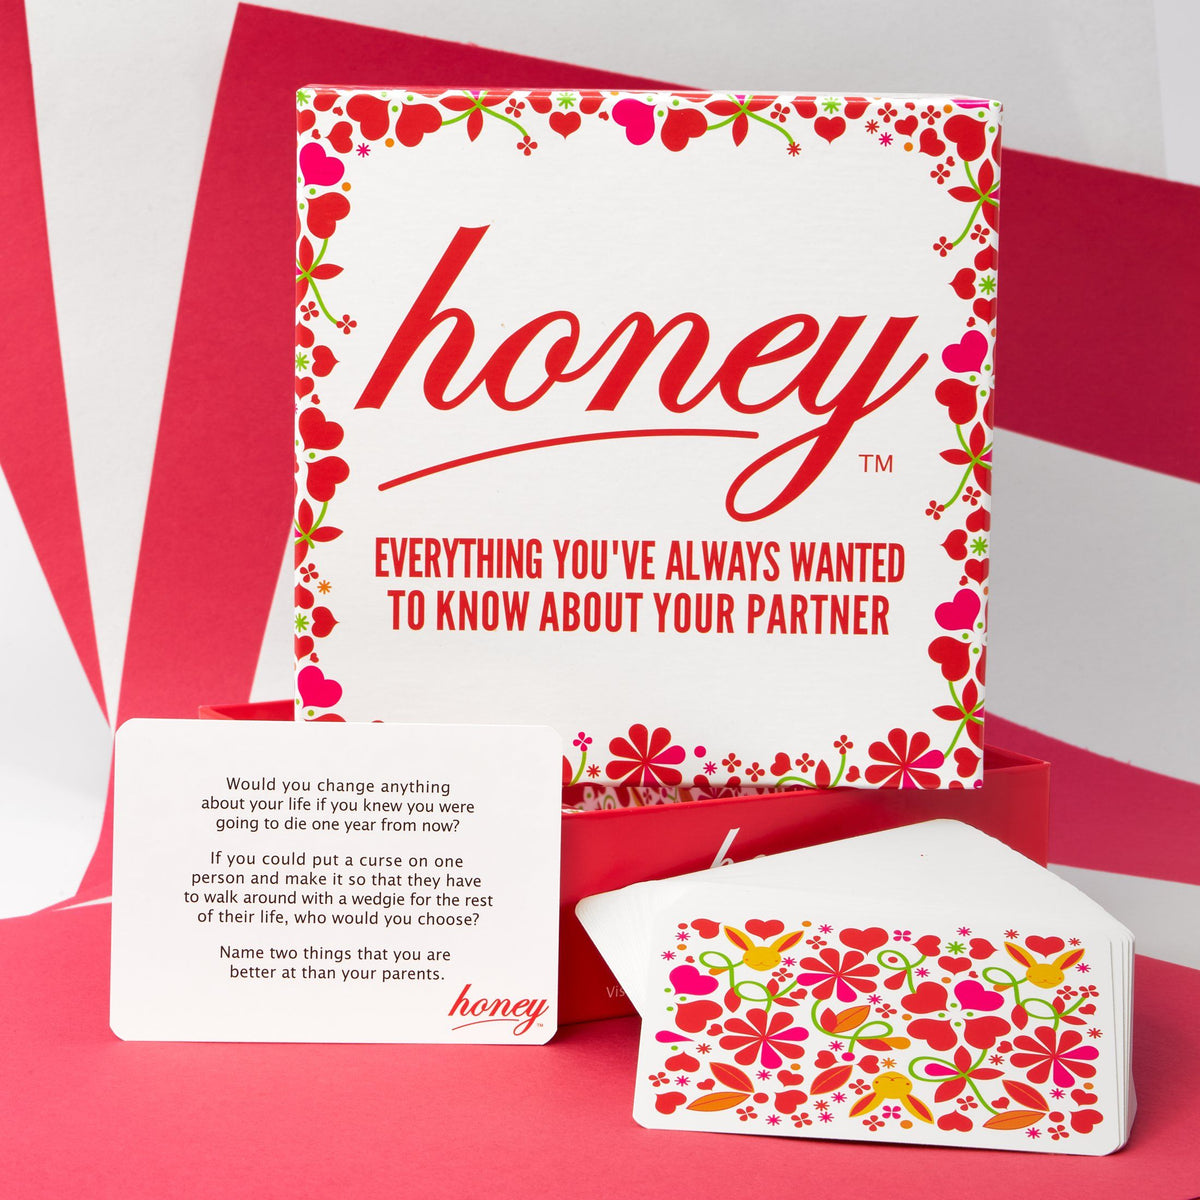 Honey Game - Everything You've Always Wanted to Know About Your Partner